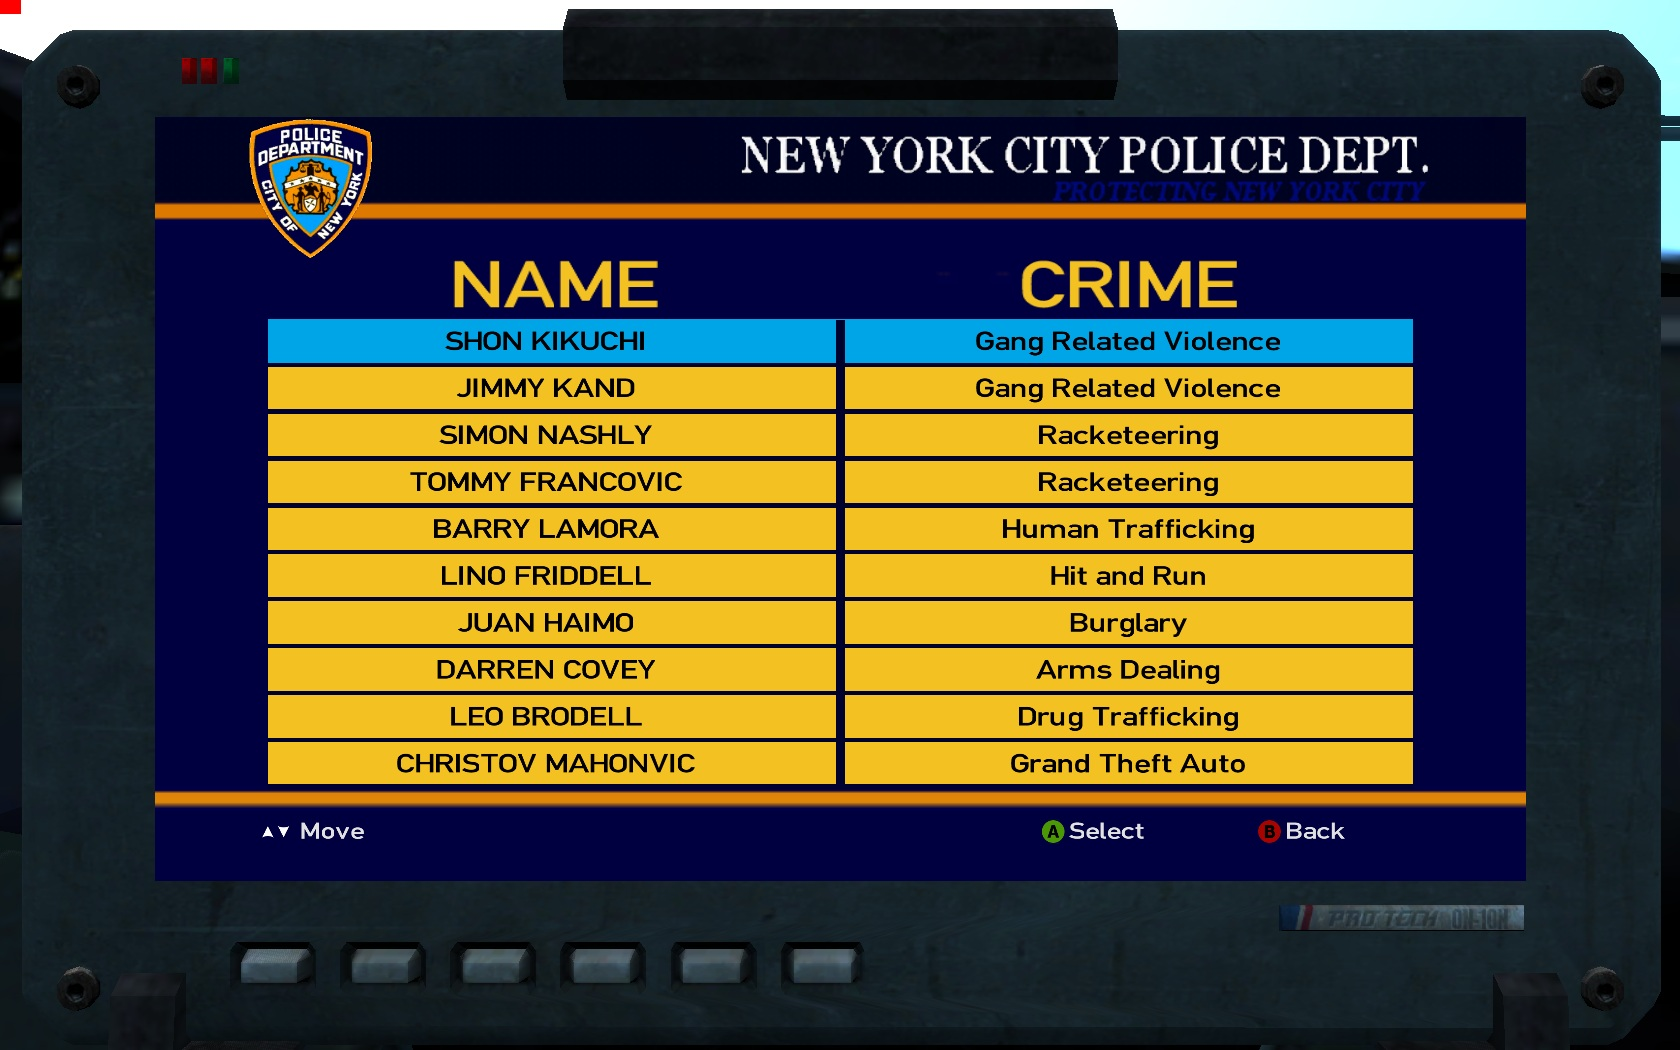 gtagarage nypd police computer view screenshot